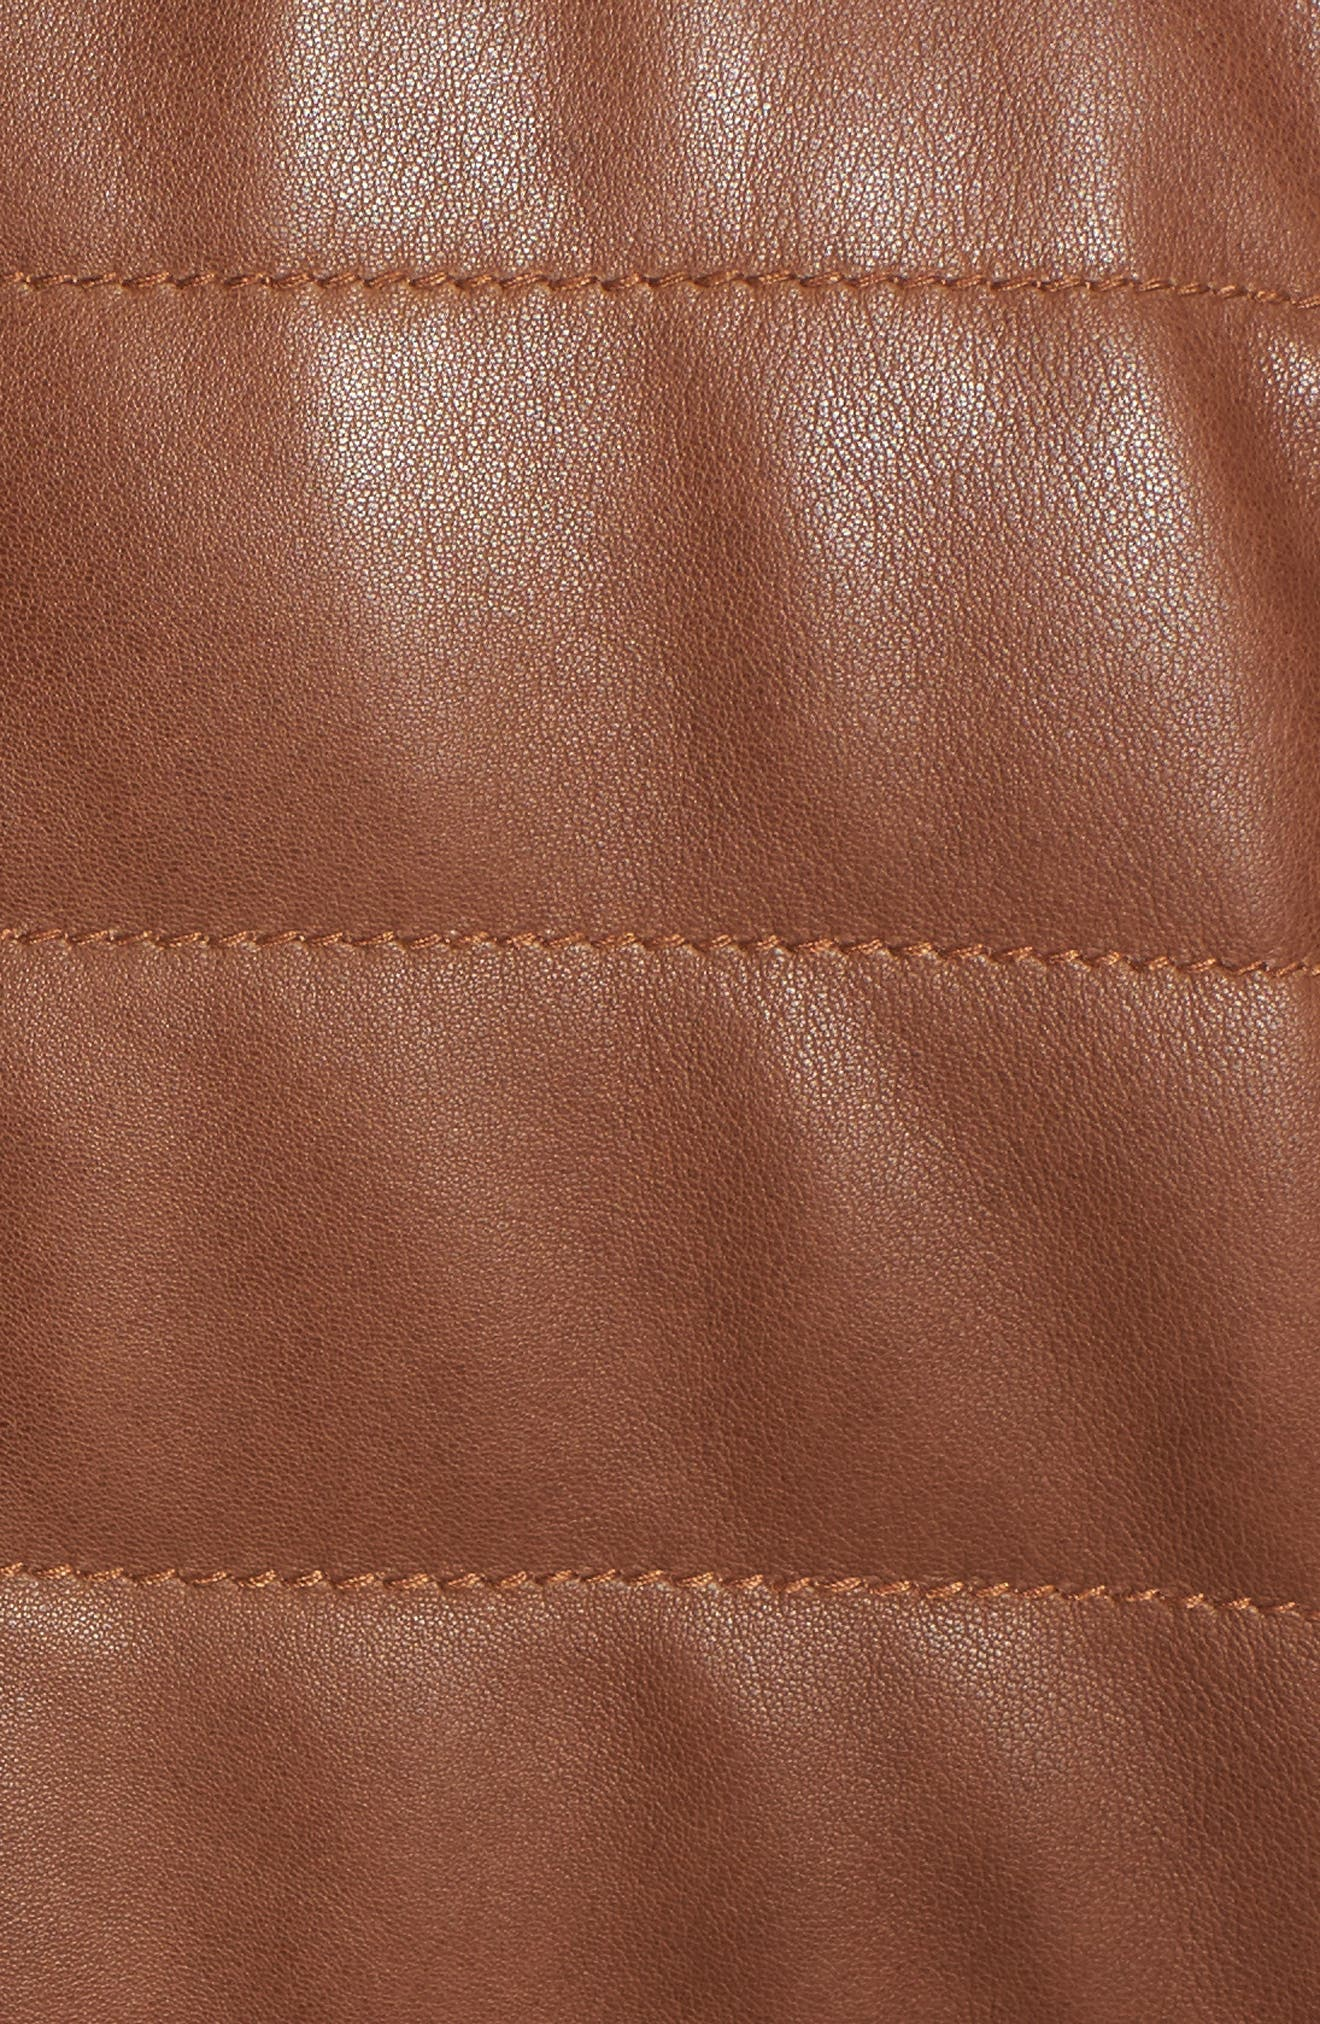 Snowside Leather Bomber Jacket,                             Alternate thumbnail 5, color,                             Brown Enough